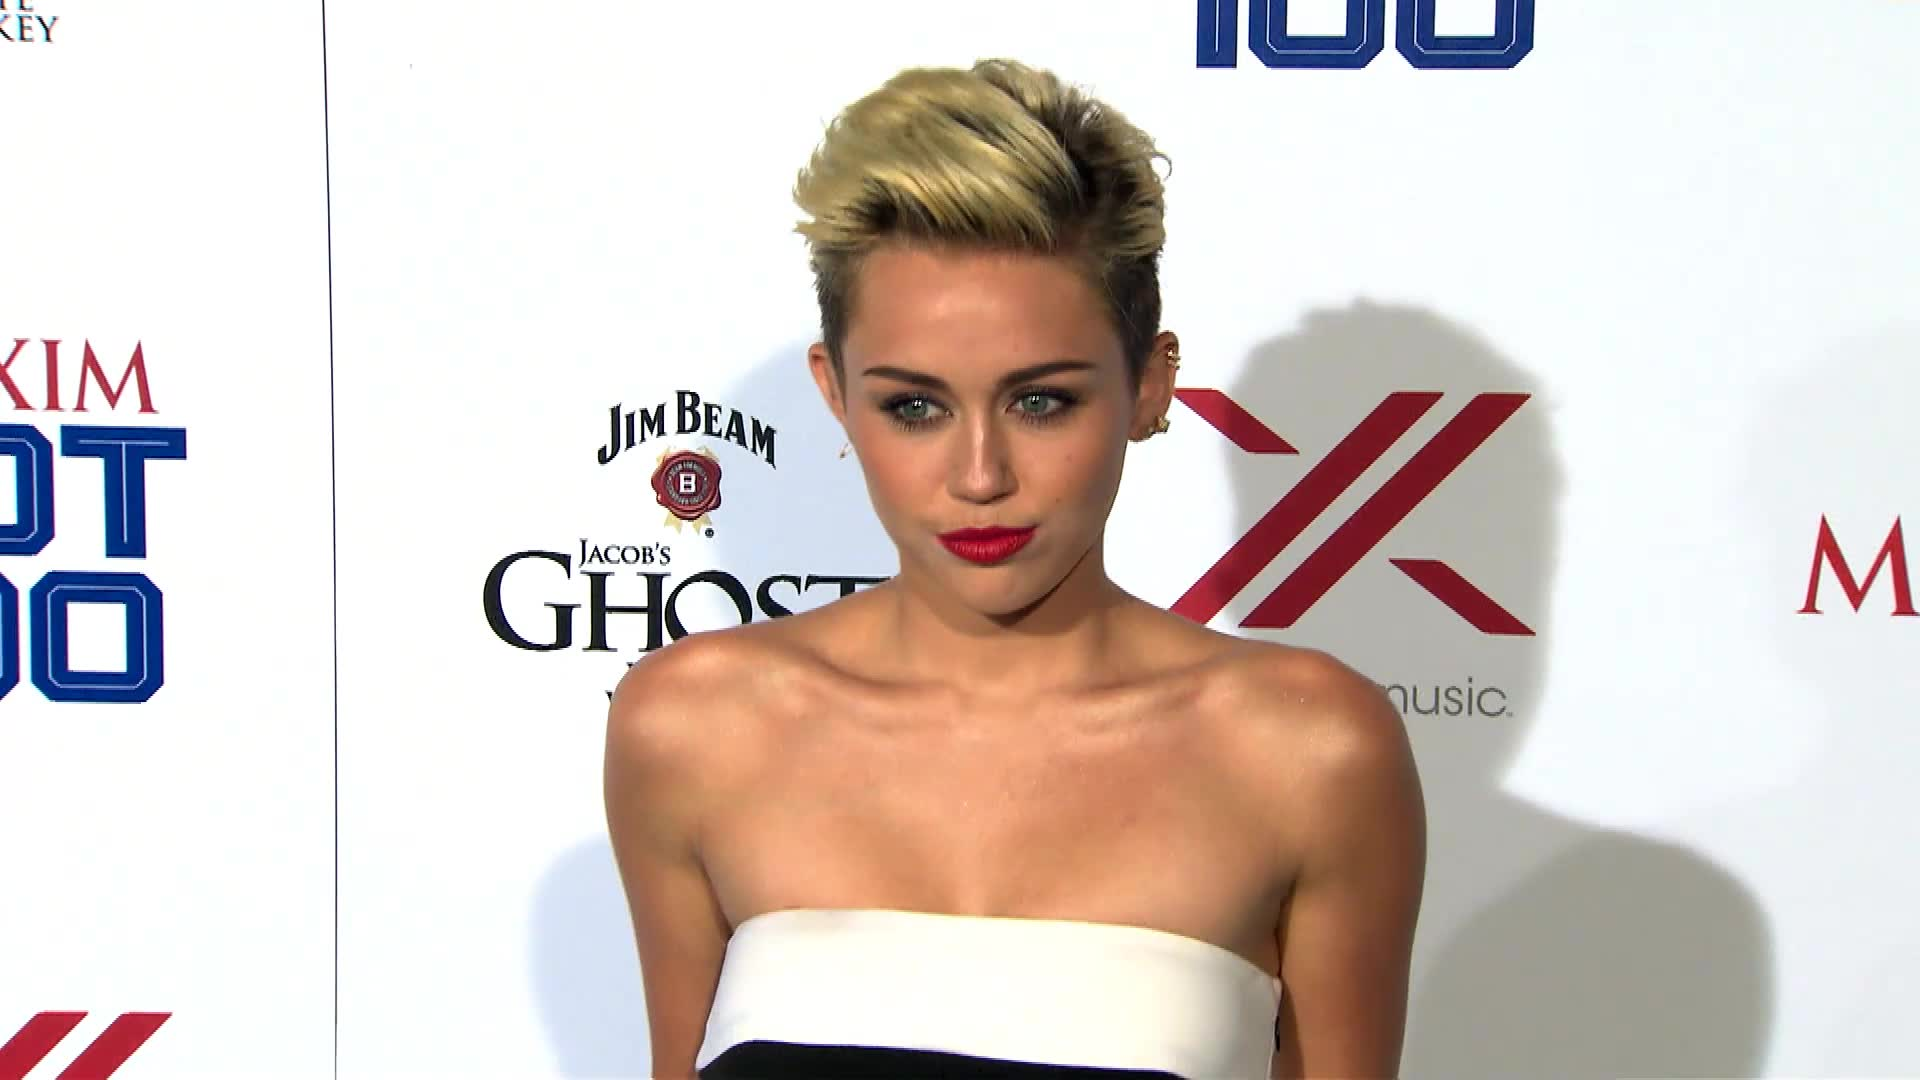 Miley Cyrus Gets Restraining Order From Delusional Man